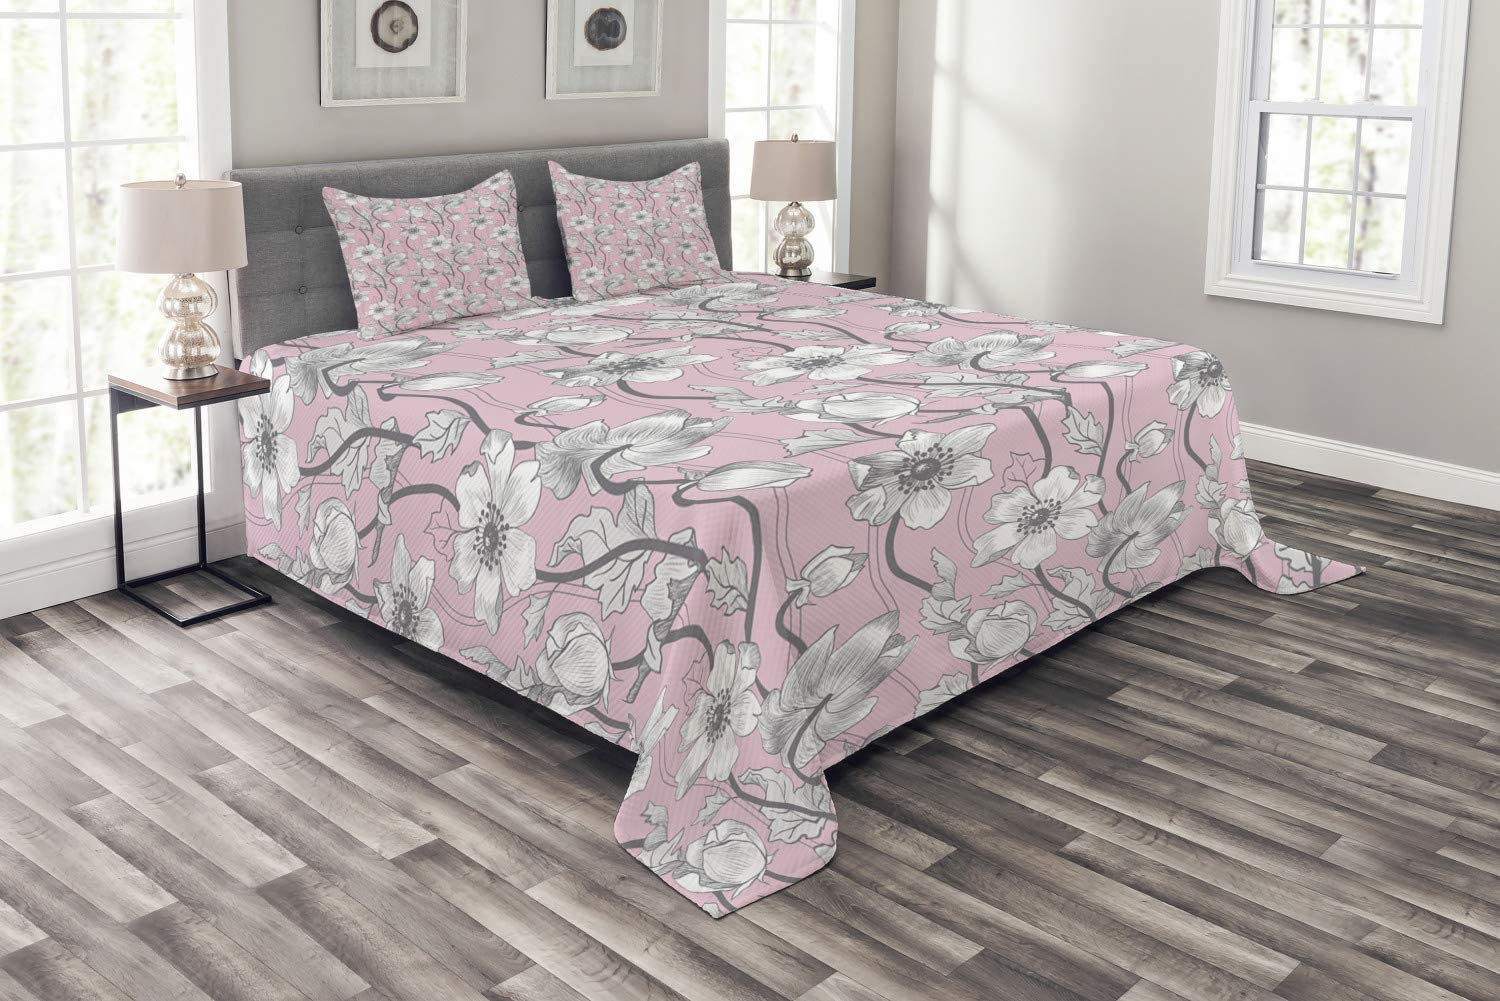 Ambesonne Pink and Grey Bedspread, Vintage Floral Anemones Fragrance Soft Toned Yoga Botanical Beauty Art, Decorative Quilted 3 Piece Coverlet Set with 2 Pillow Shams, Queen Size, Pale Grey